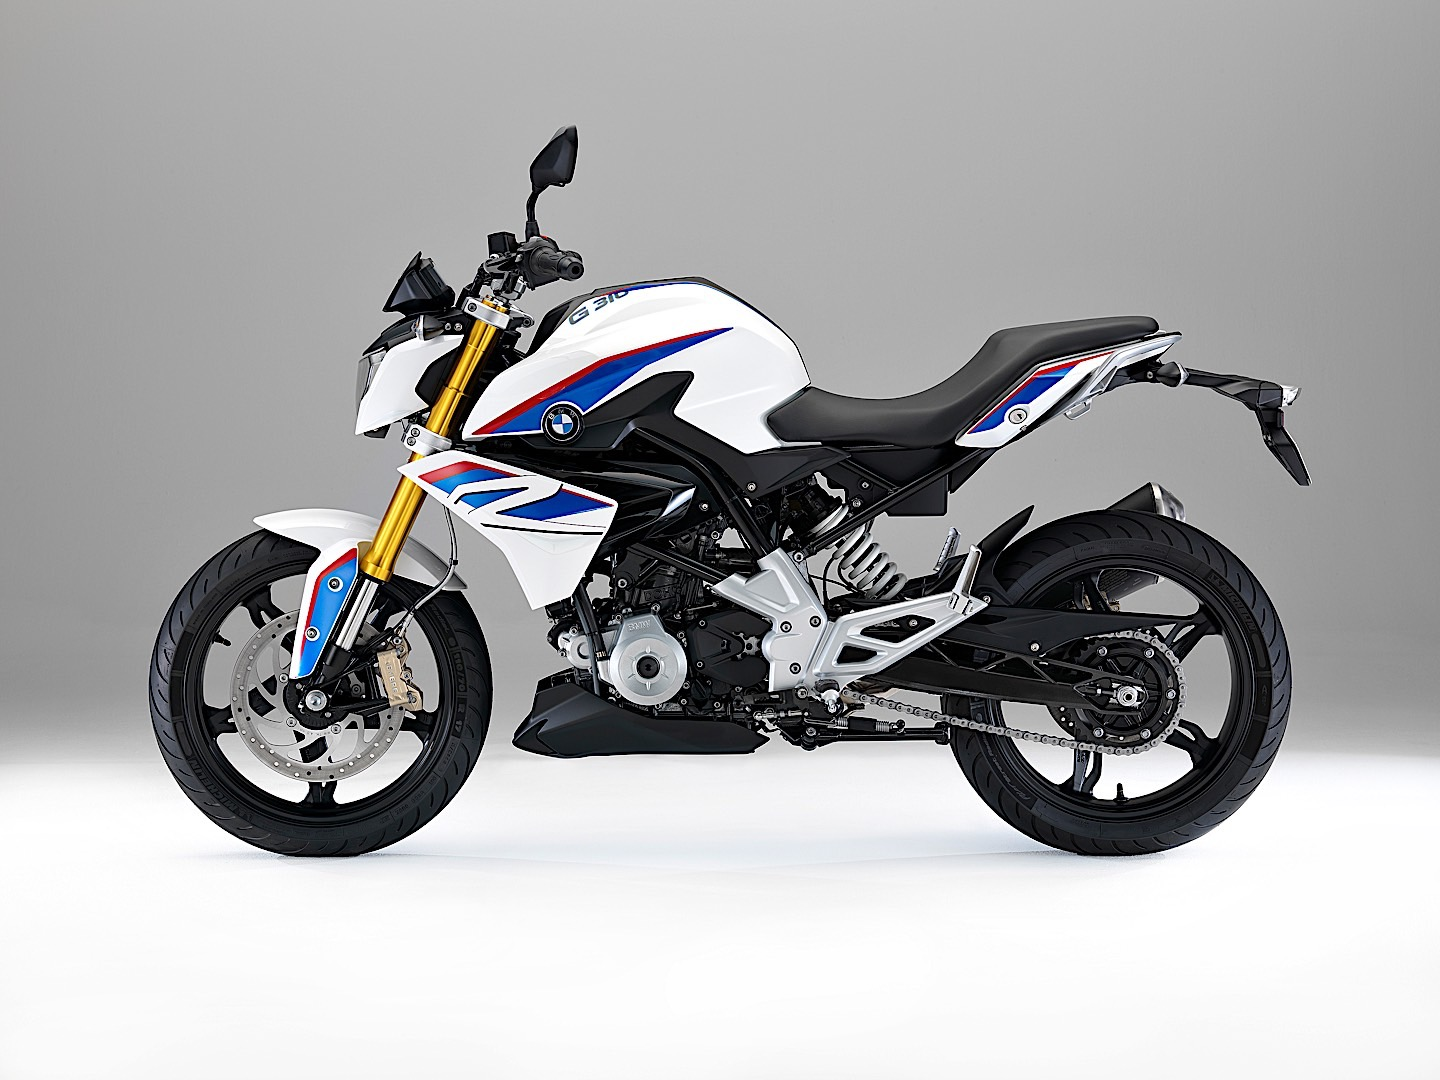 BMW Motorrad USA Reveals Specs And Price For 2018 G 310 R